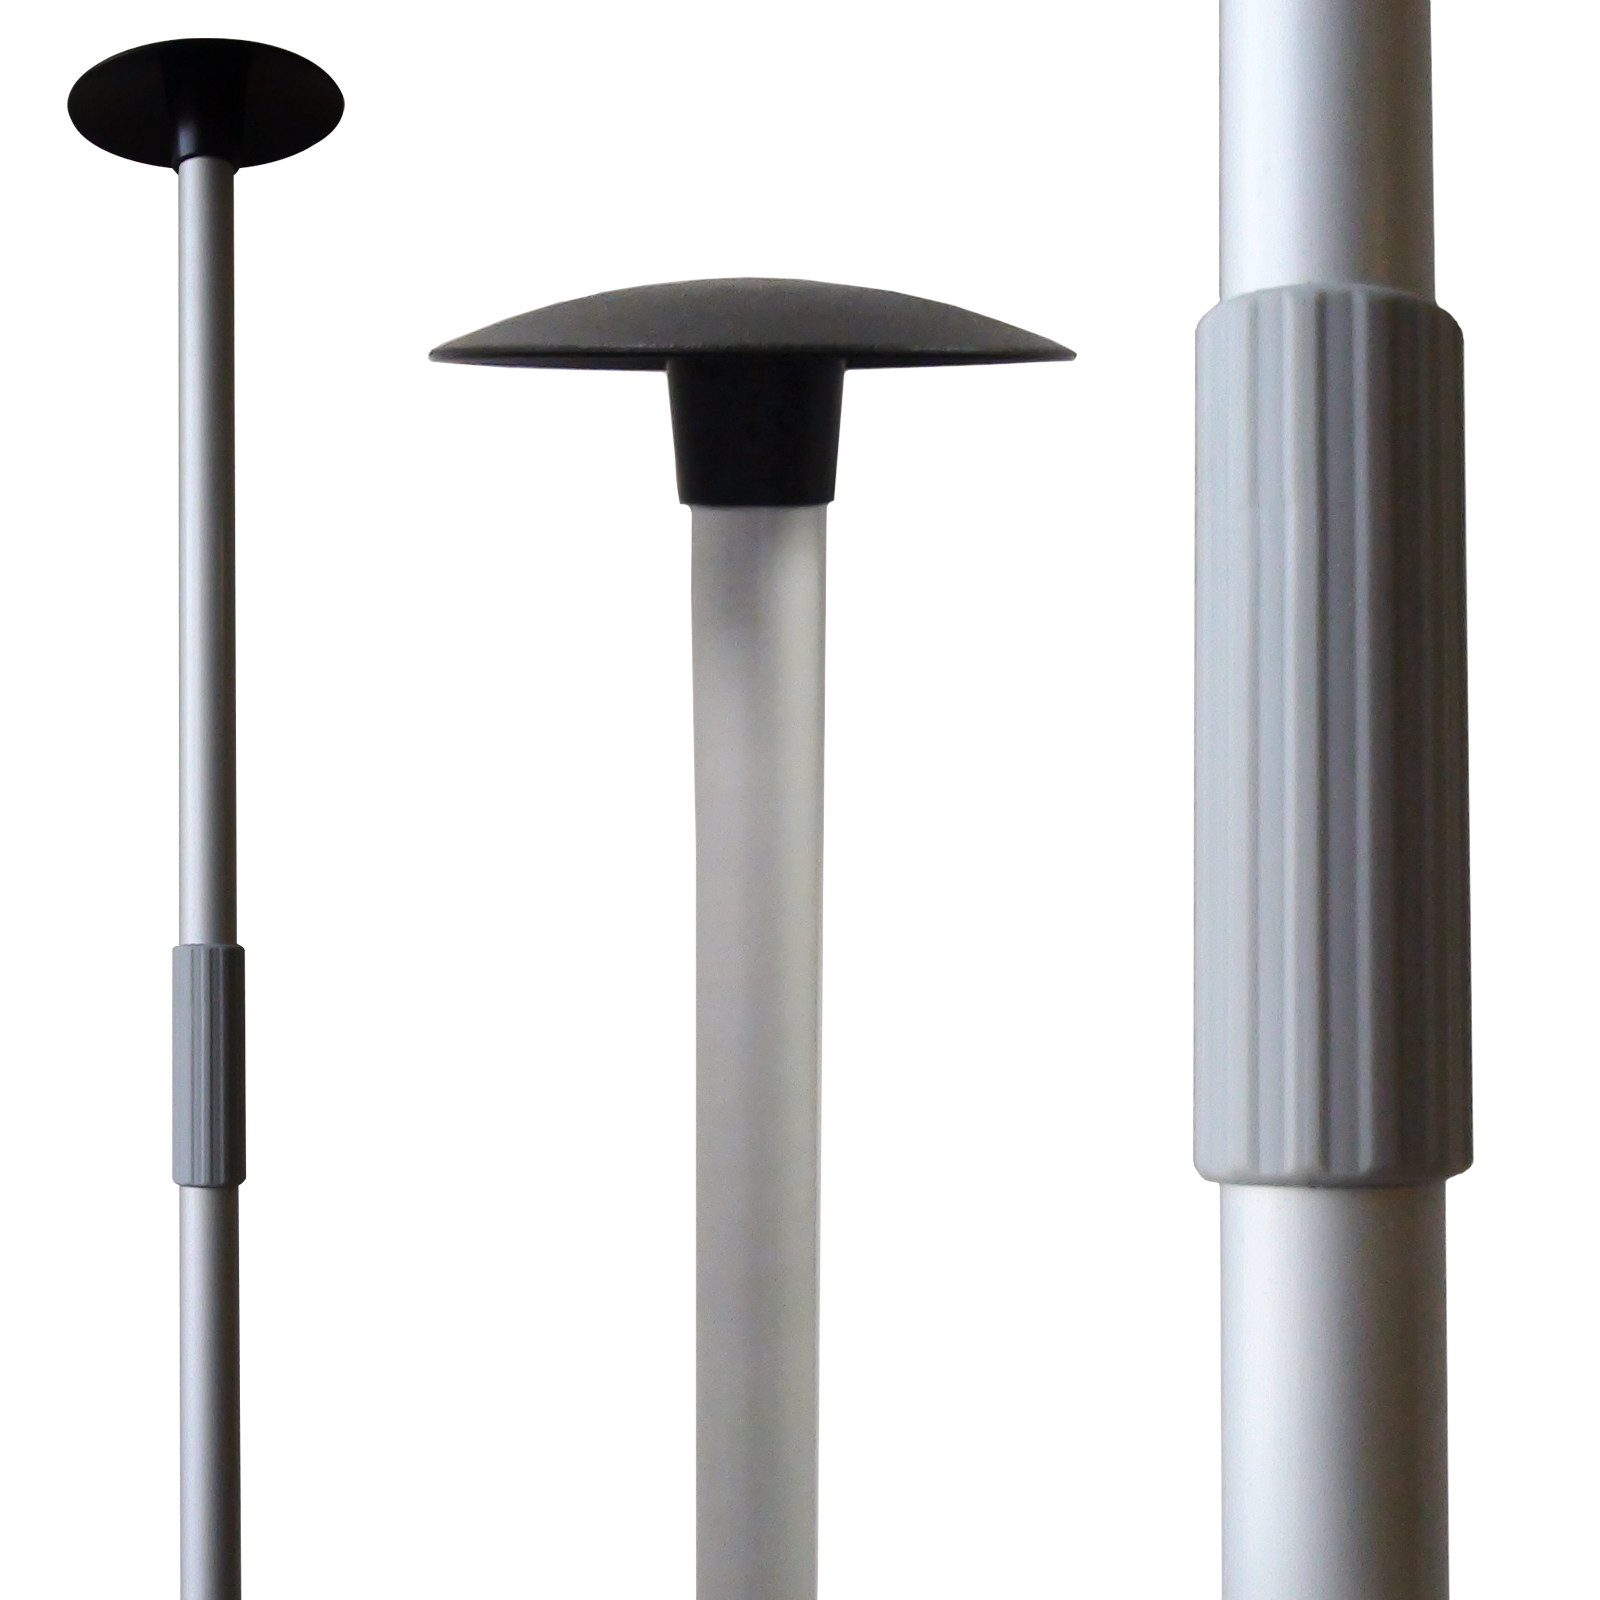 Budge Adjustable Boat Cover Support Pole, Prevents Pooling